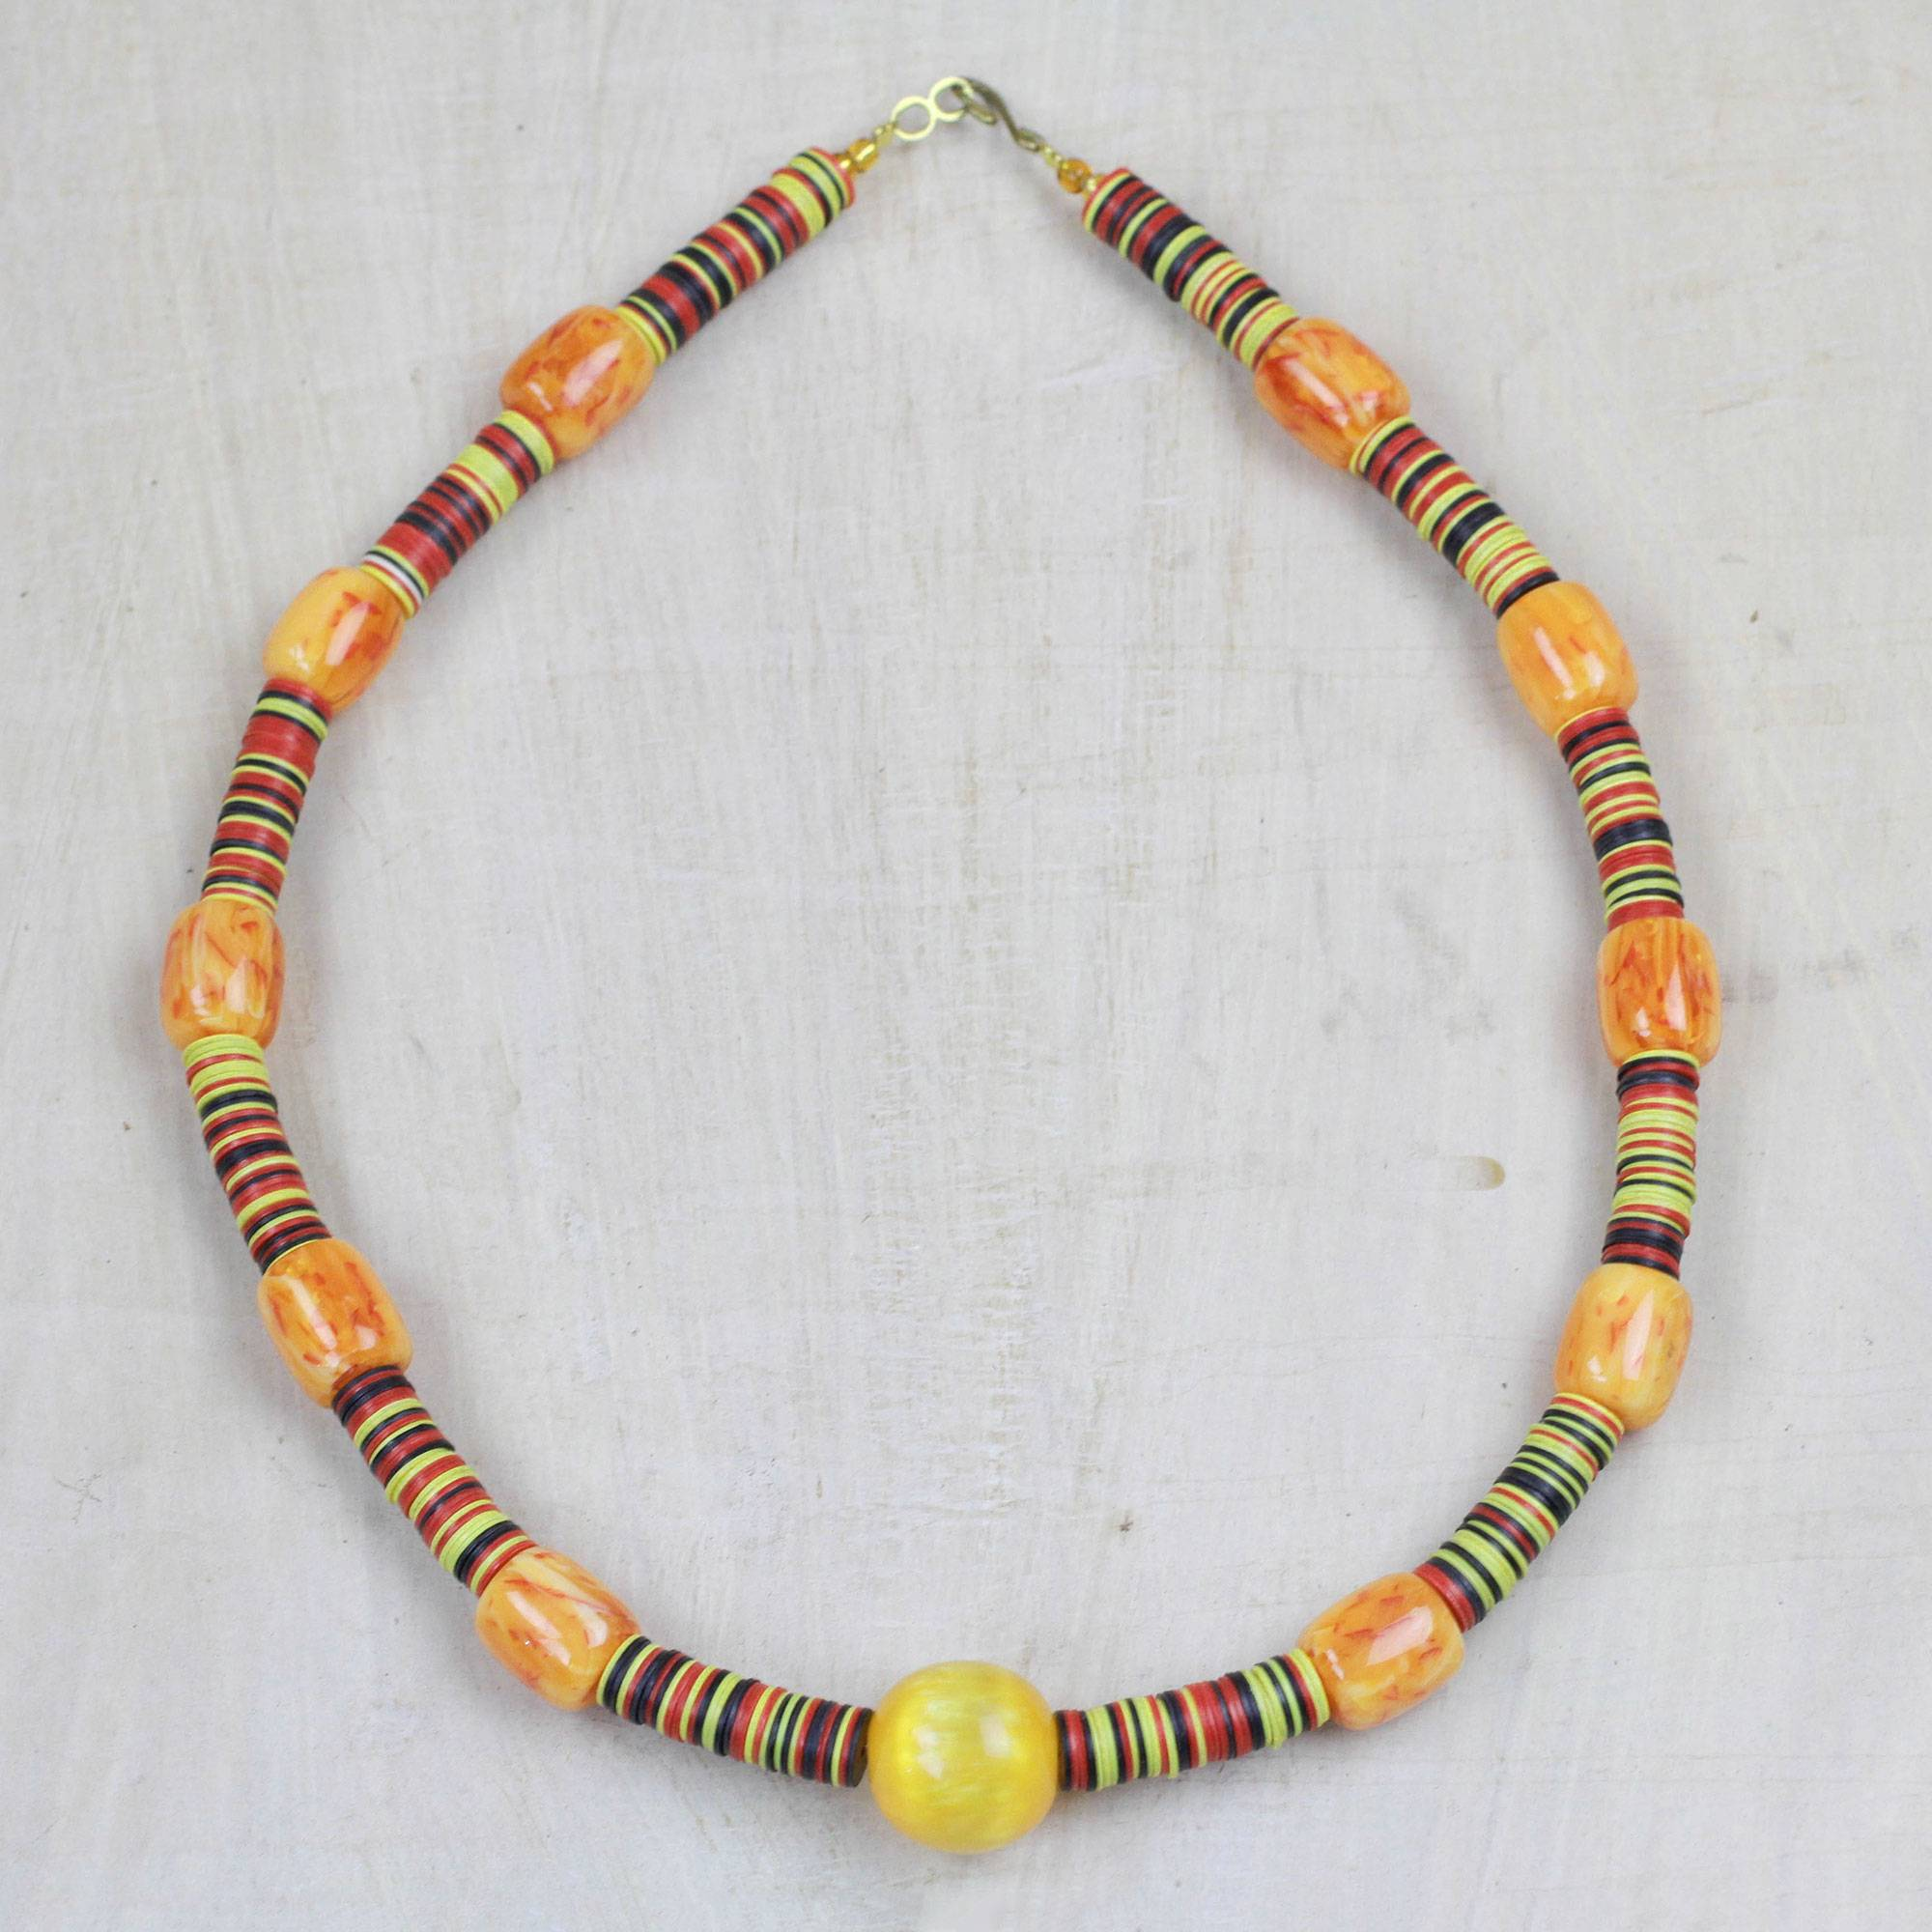 282c2d941ee01 Recycled Plastic Beaded Necklace from Ghana, 'Precious Environment'